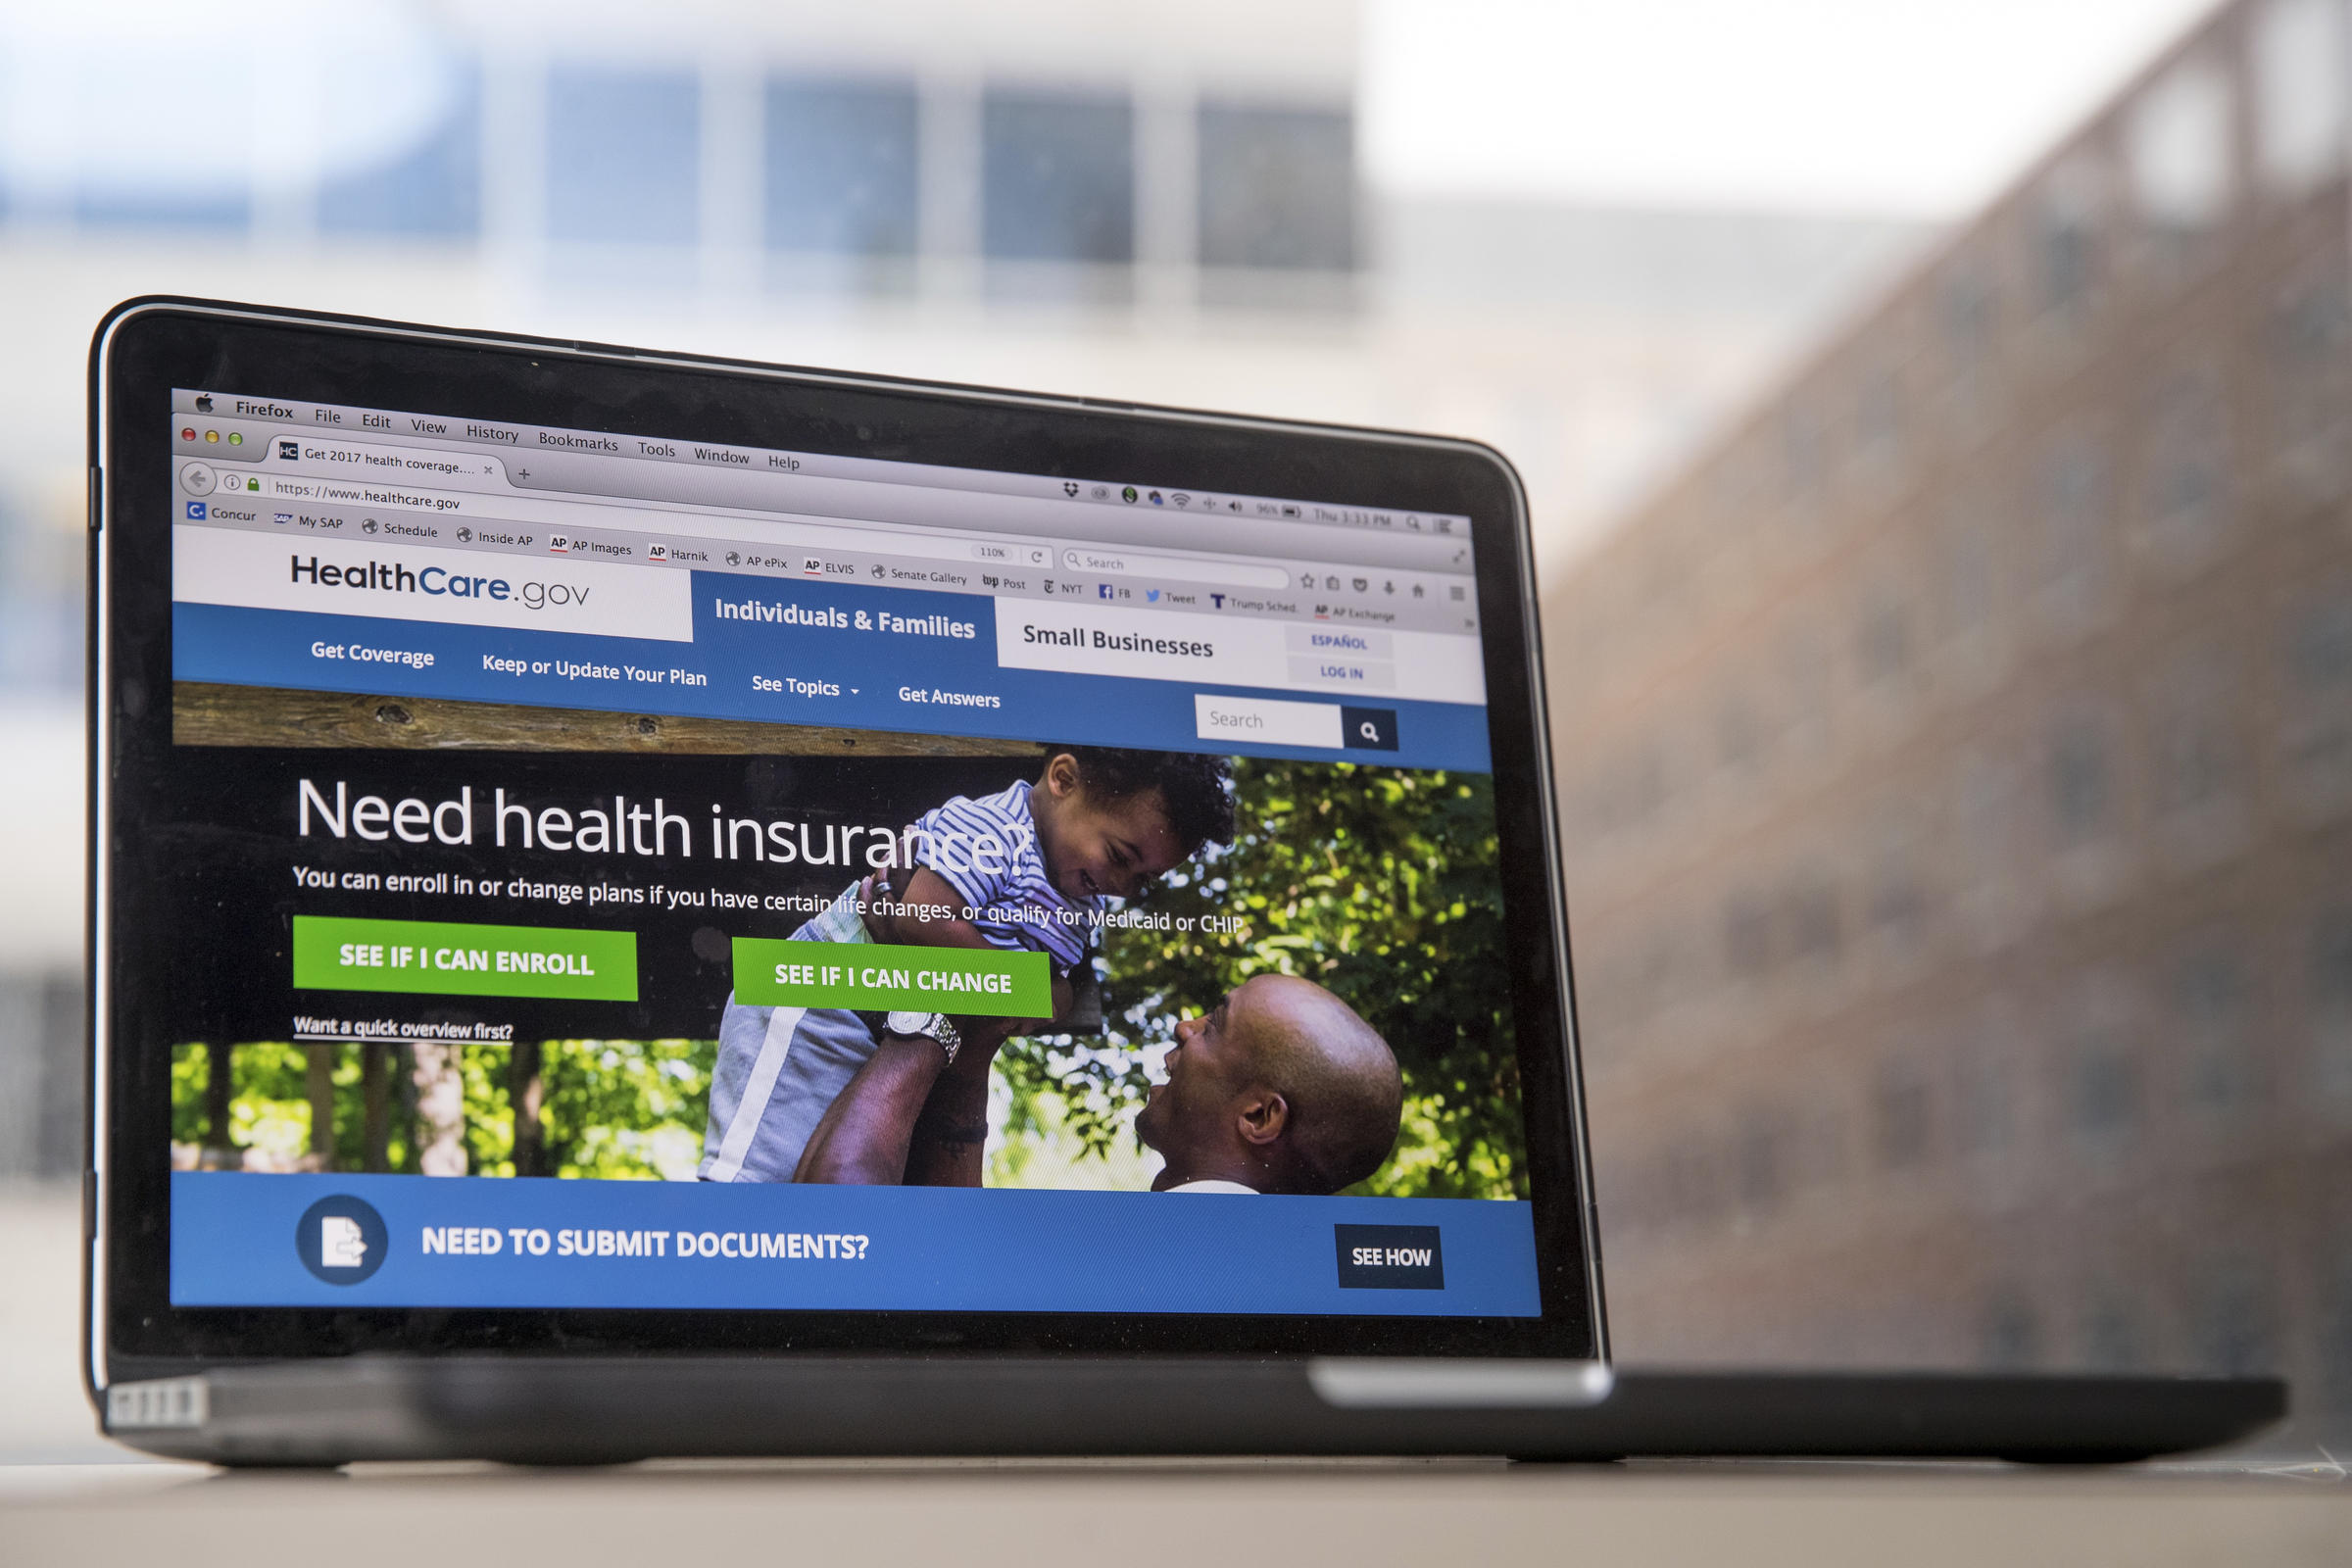 Family Checkbook: Test your health insurance knowledge